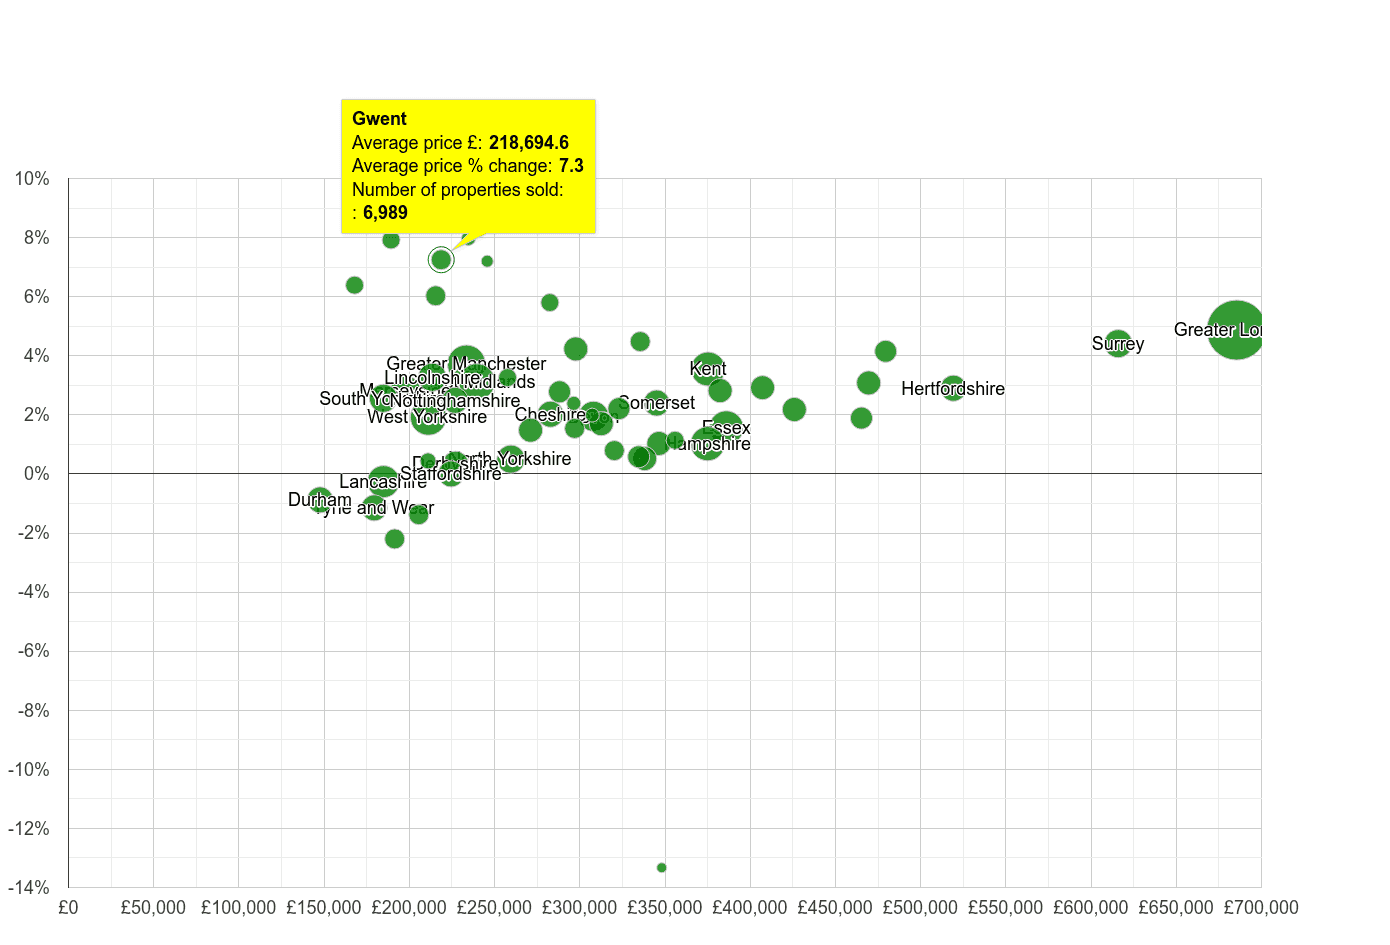 Gwent house prices compared to other counties